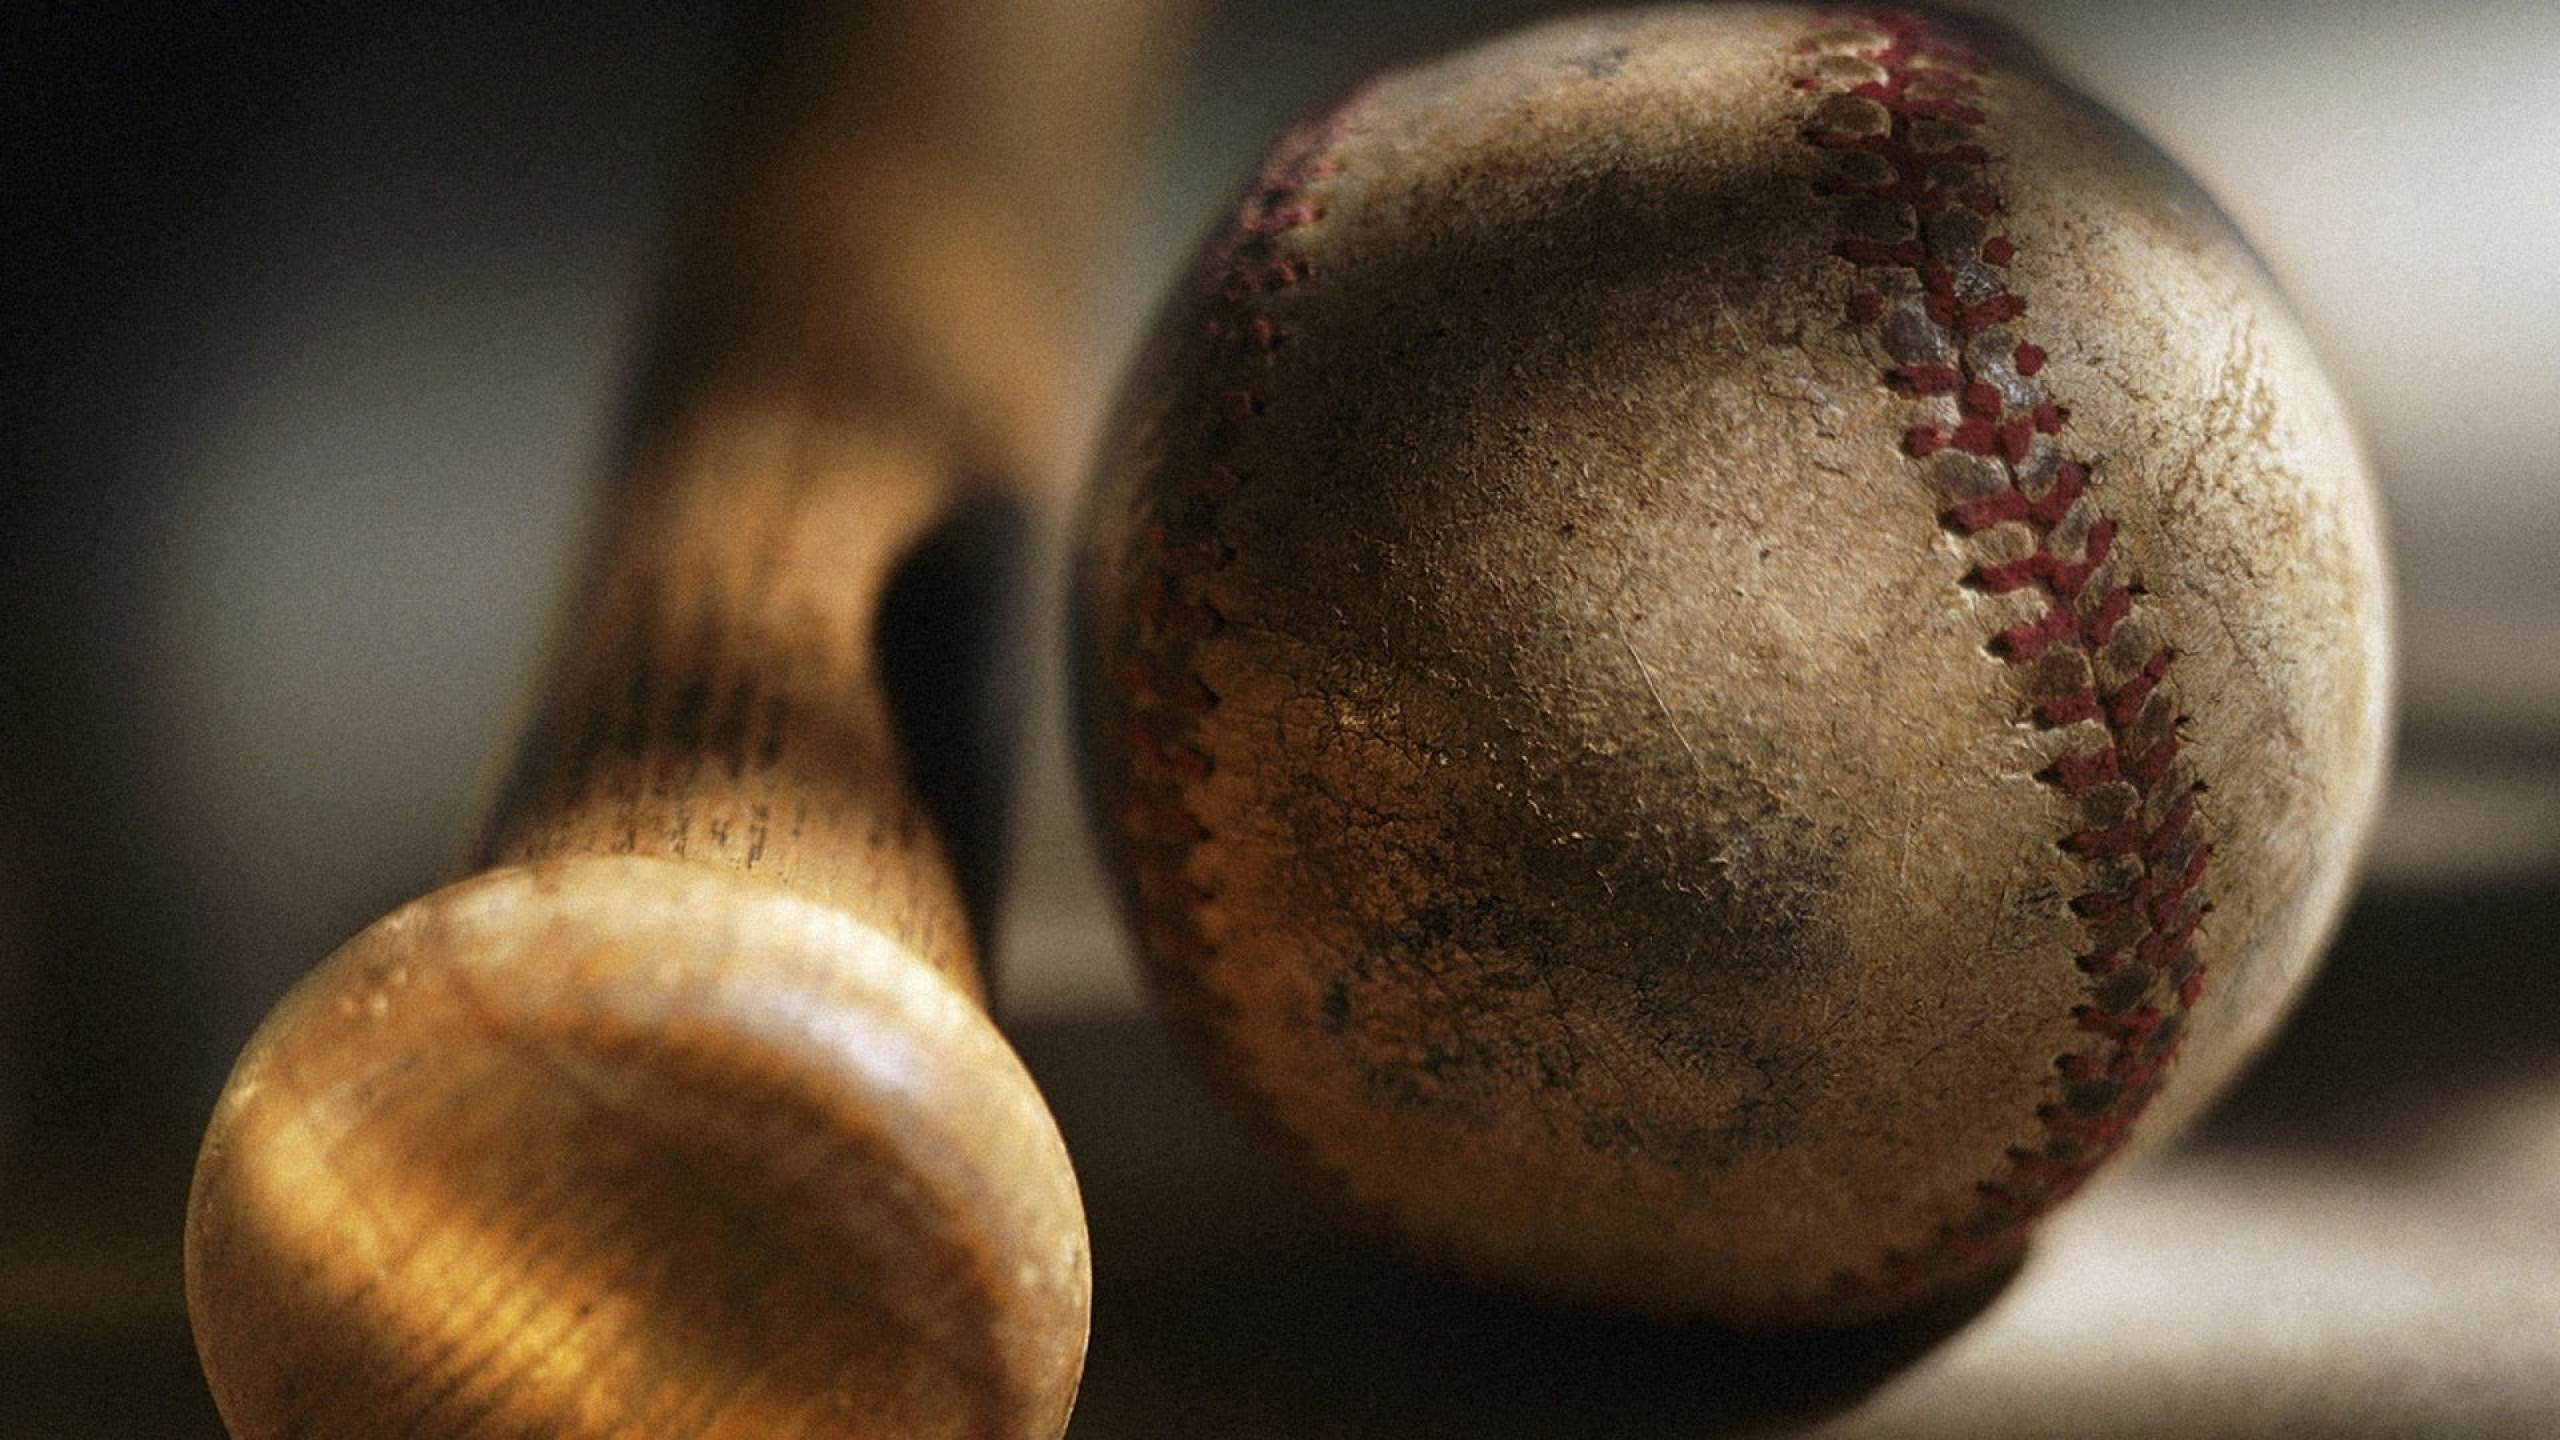 Old Baseball & Bat Wallpaper